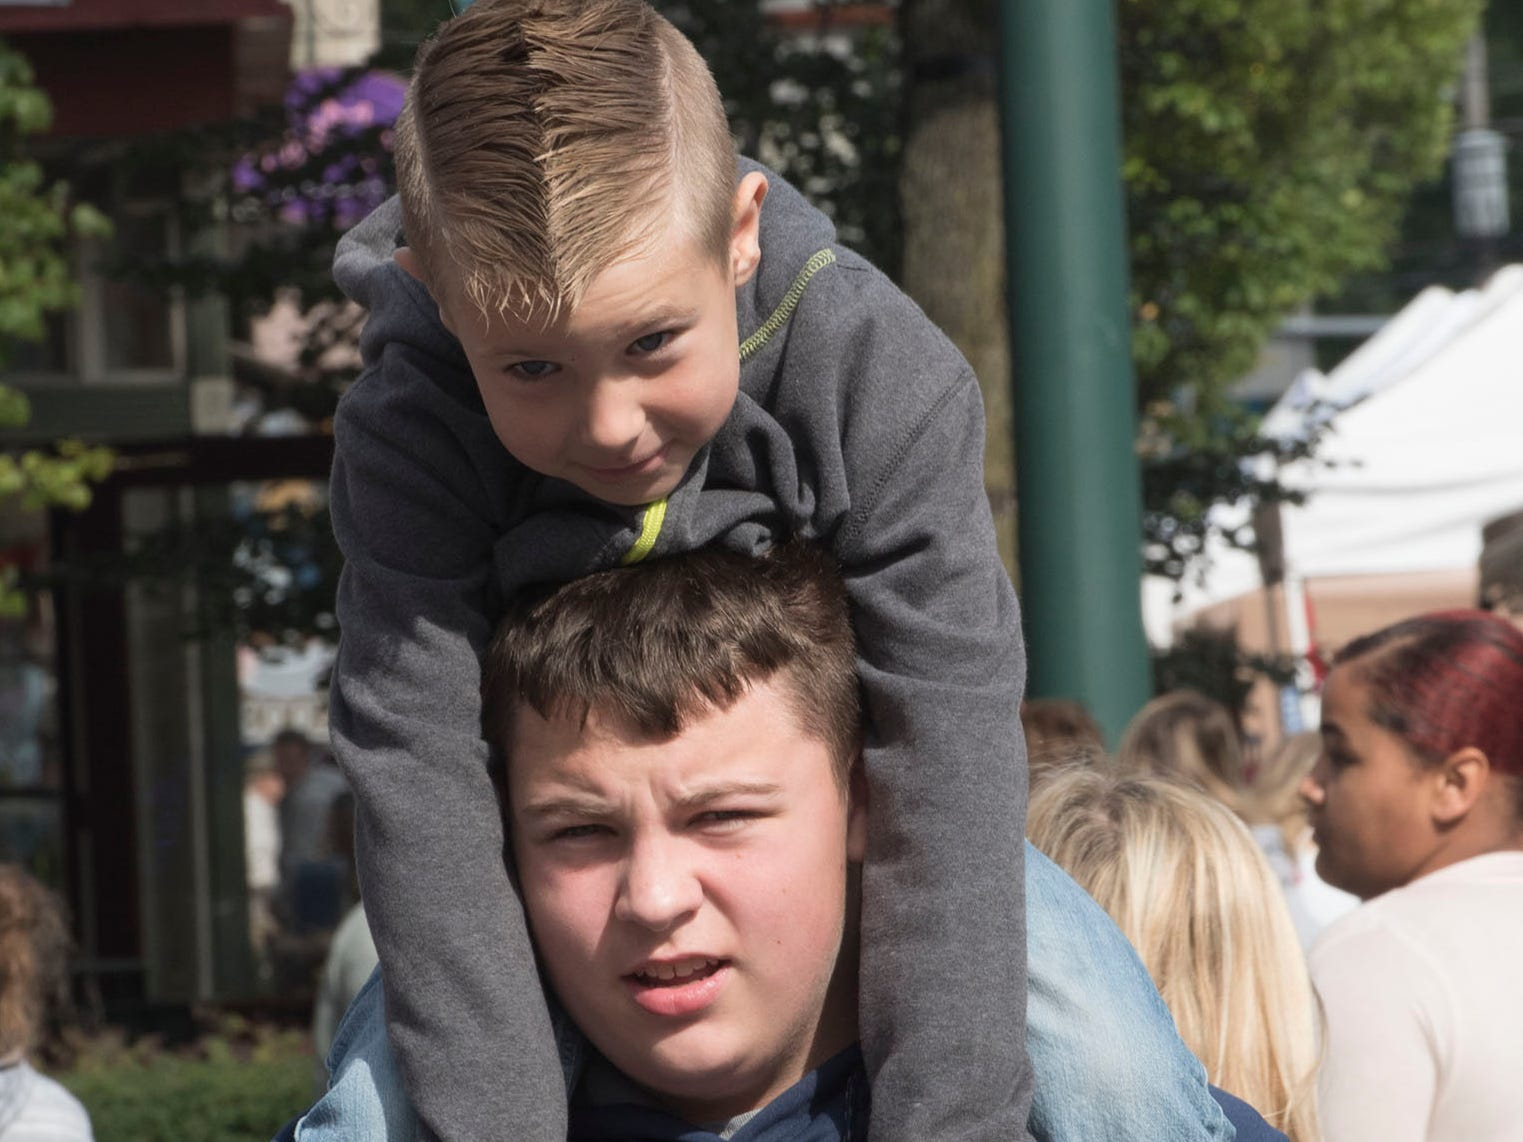 Hayden Ott, 13, gives his cousin Triptyn Barmont, 6, a lift. Applefest started Saturday morning October 20, 2018 in downtown Chambersburg.